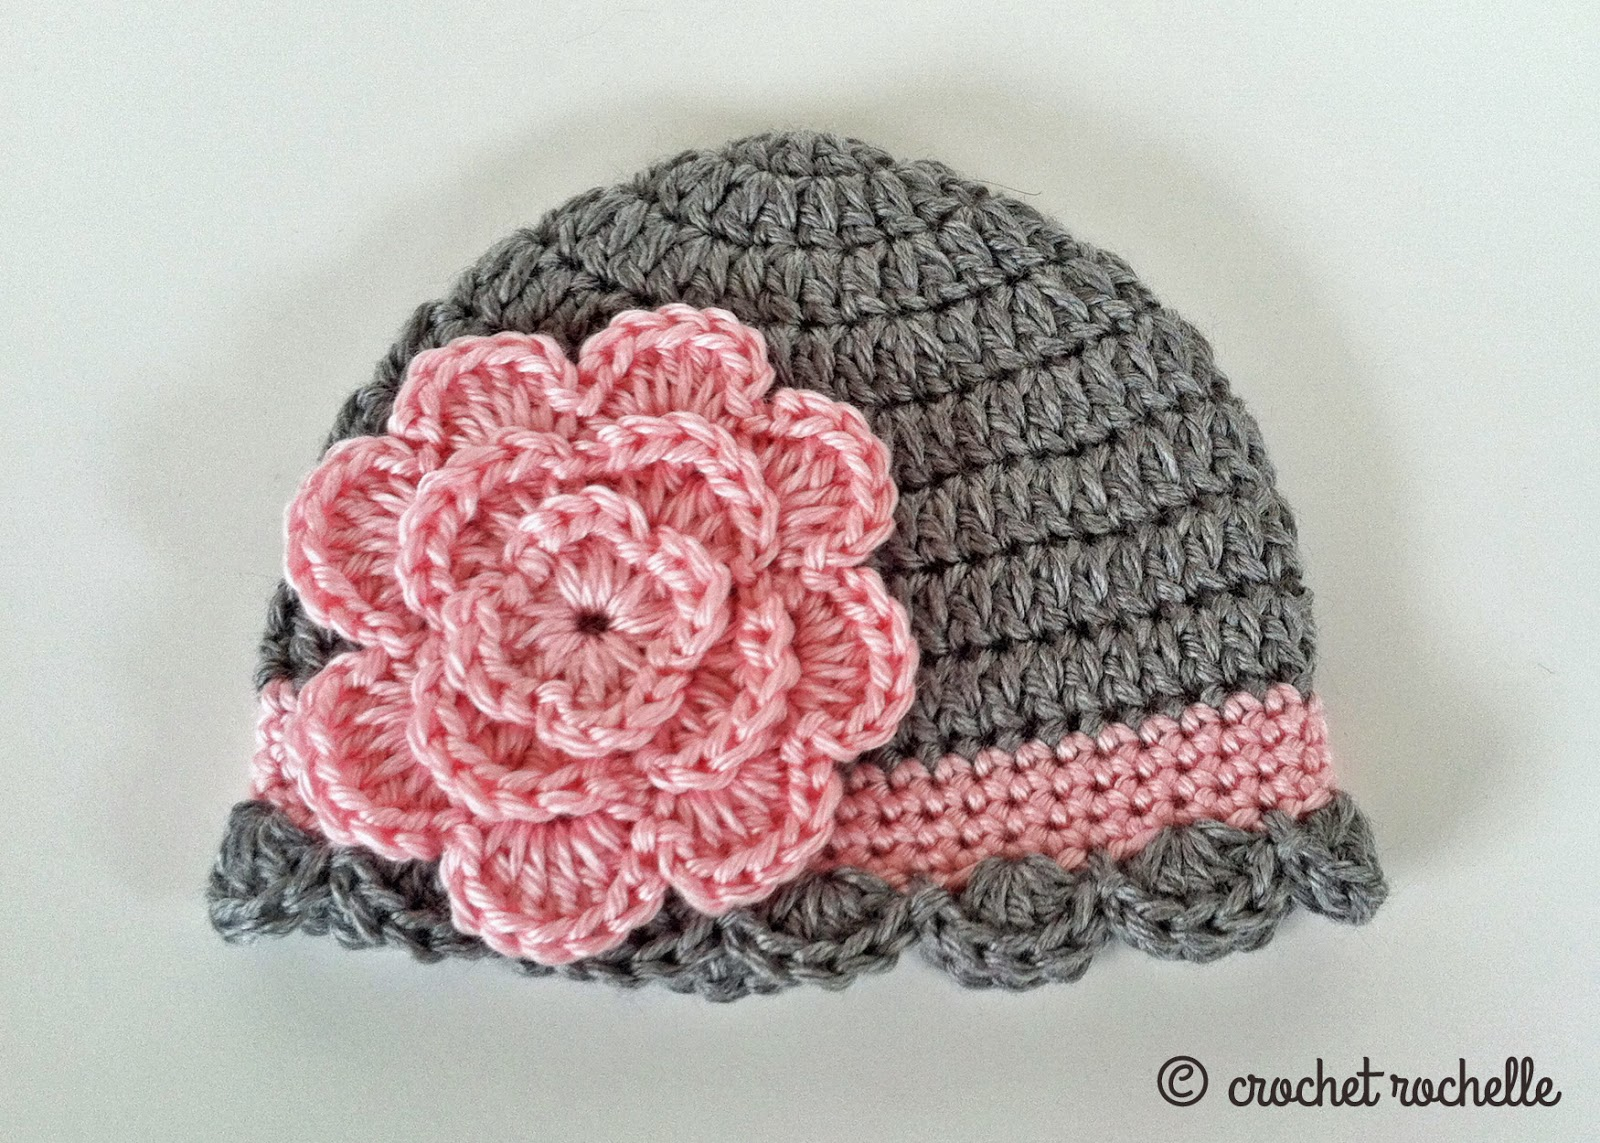 Crochet Beanie Hat Pattern For Babies : Crochet Rochelle: Pretty Baby Beanie